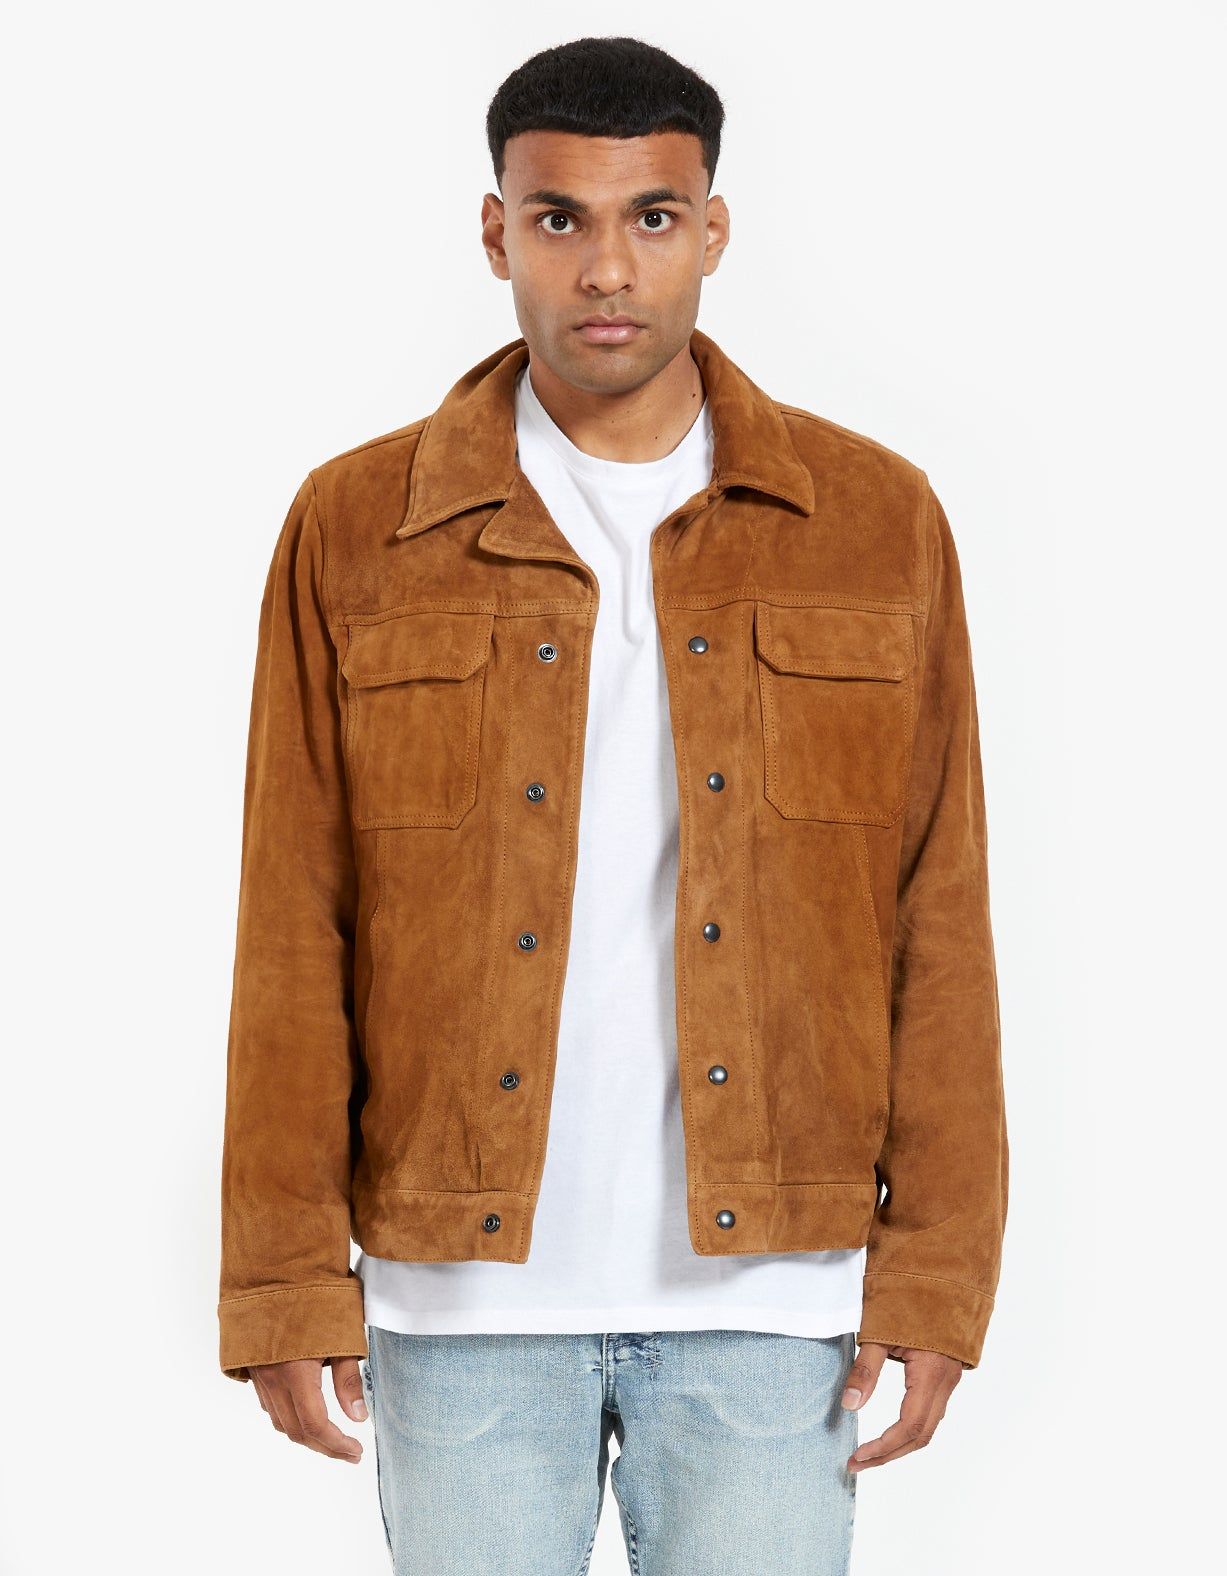 Adaire Suede Jacket - Tan